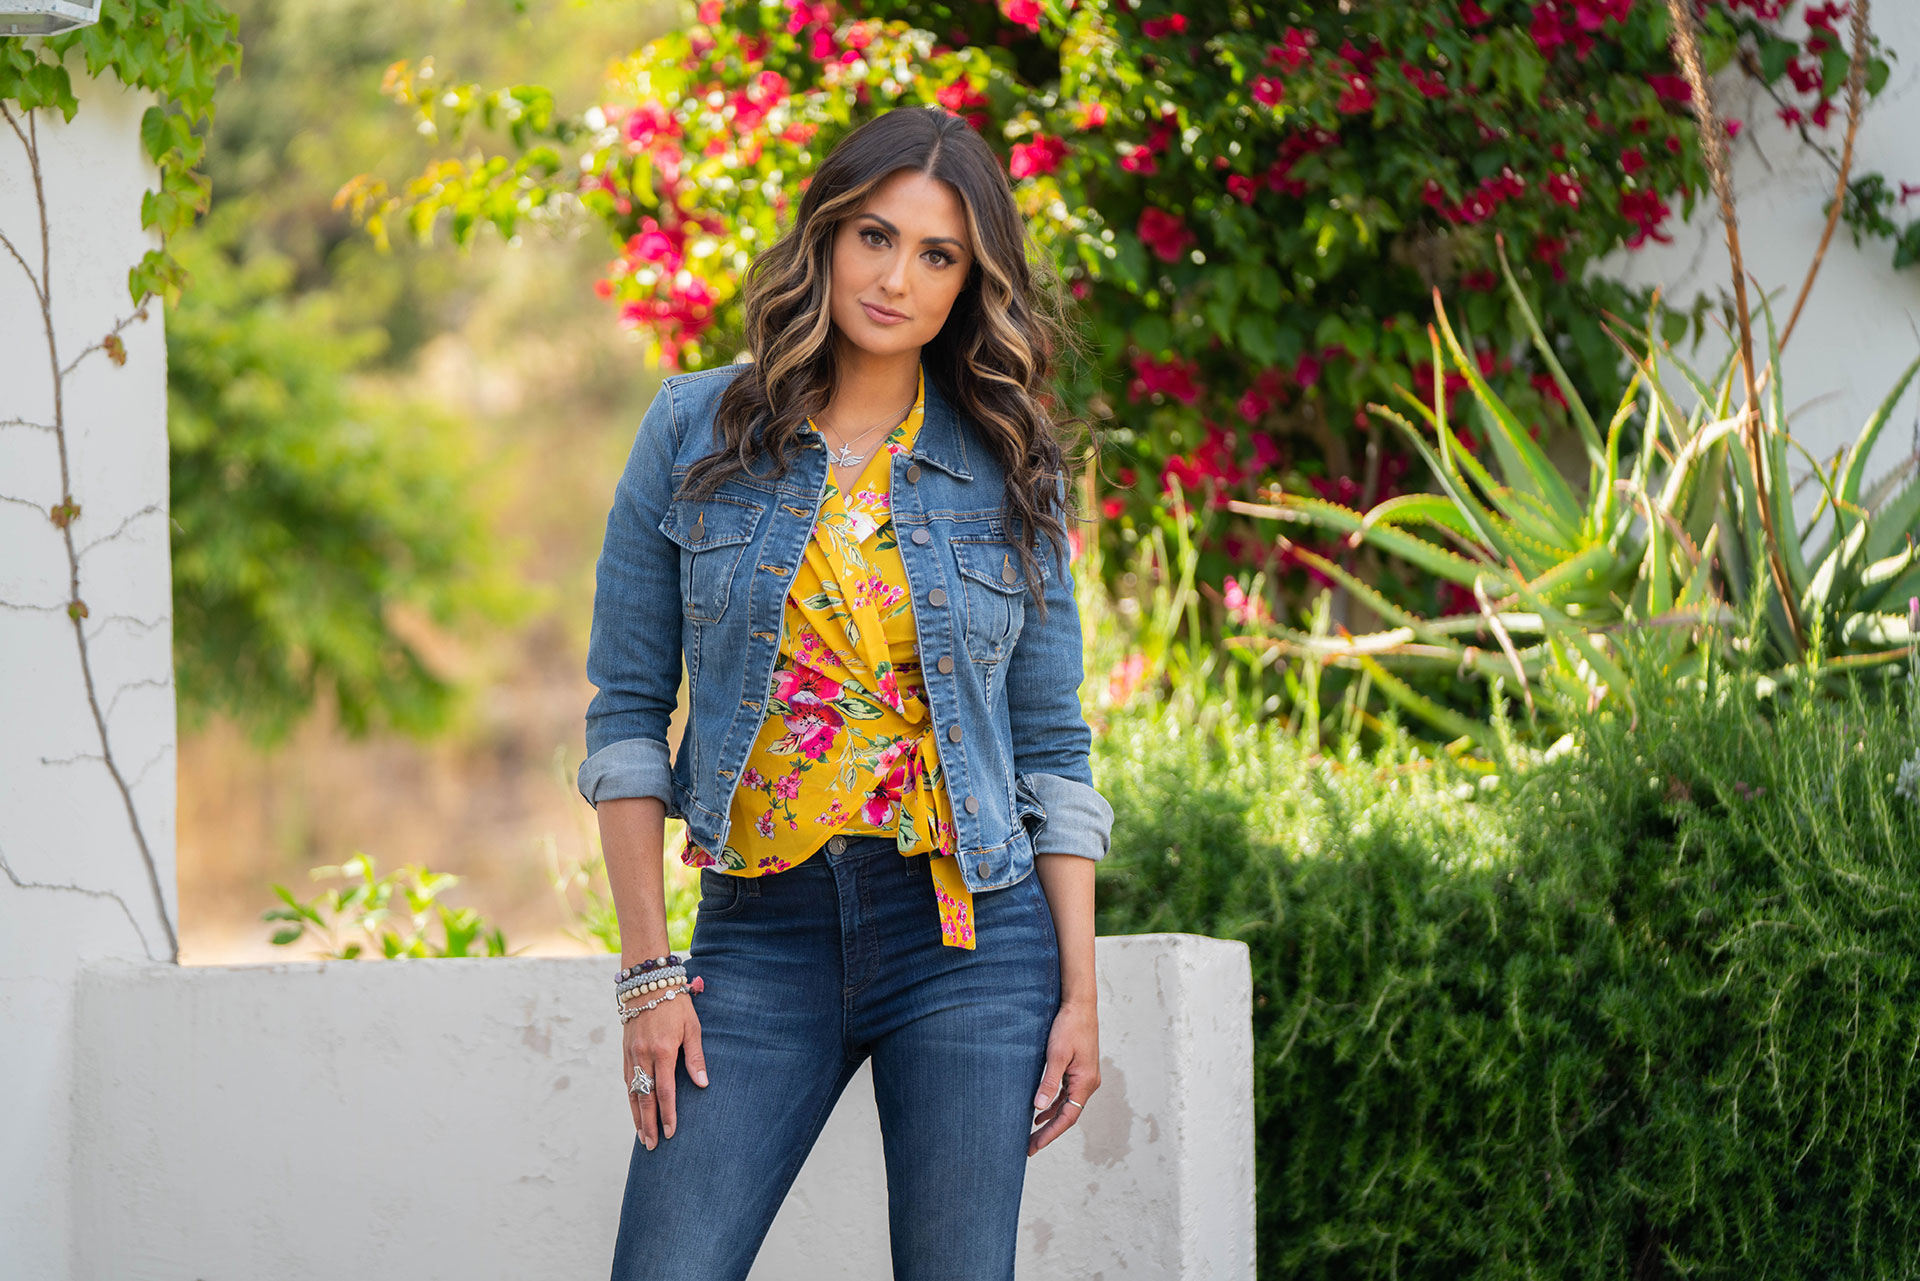 katie_cleary_a_sunny_space_yellow.jpg